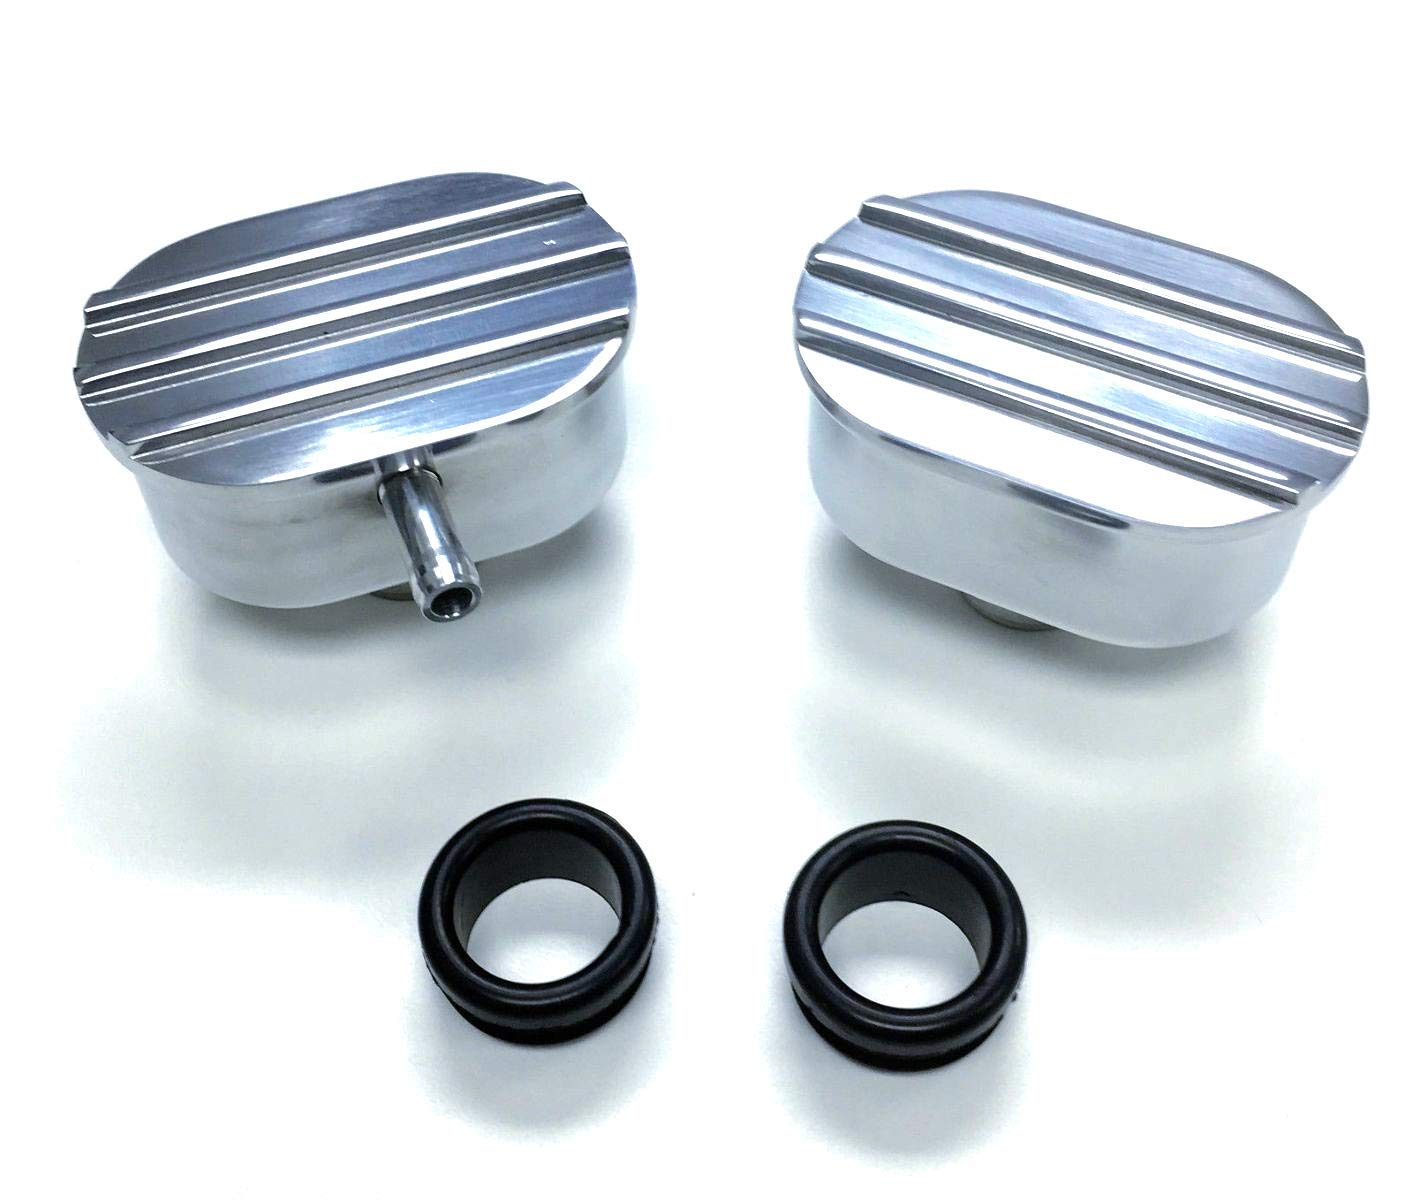 Pirate Mfg Hot Rod Polished Billet Alum Round Ball Milled Valve Cover Breather W//Grommet